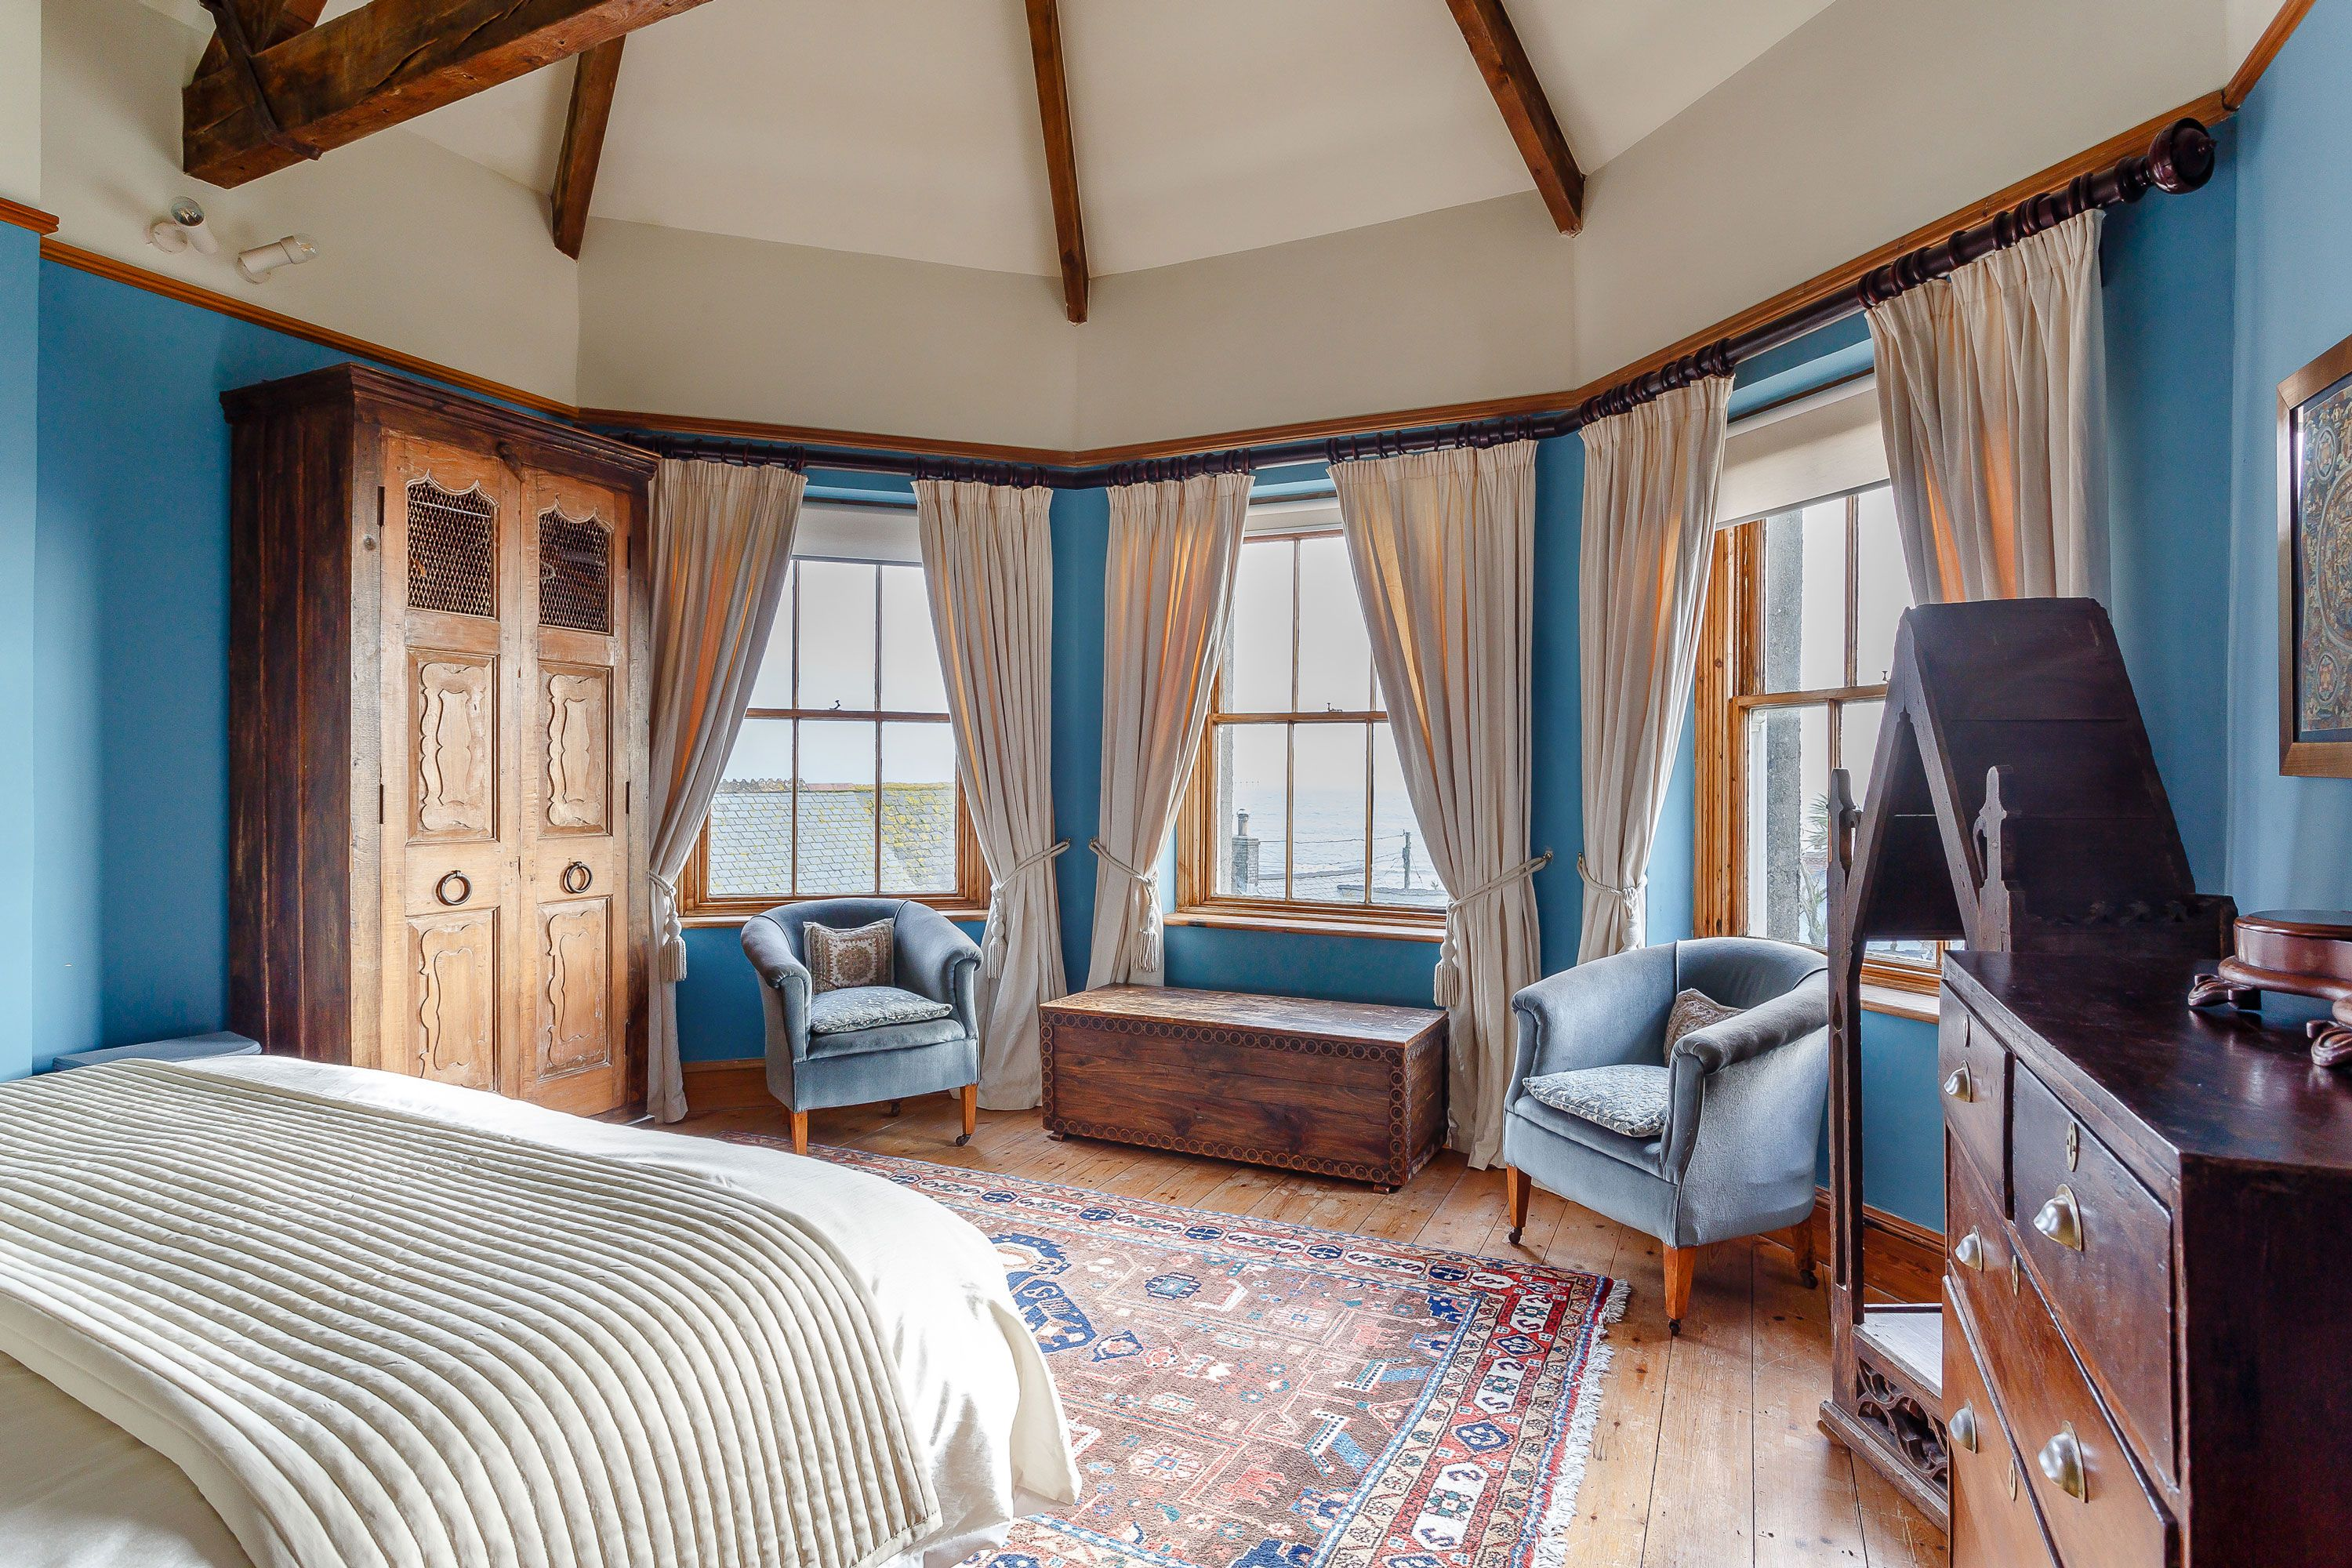 This romantic residence in Marazion overlooks Saint Michael's Mount